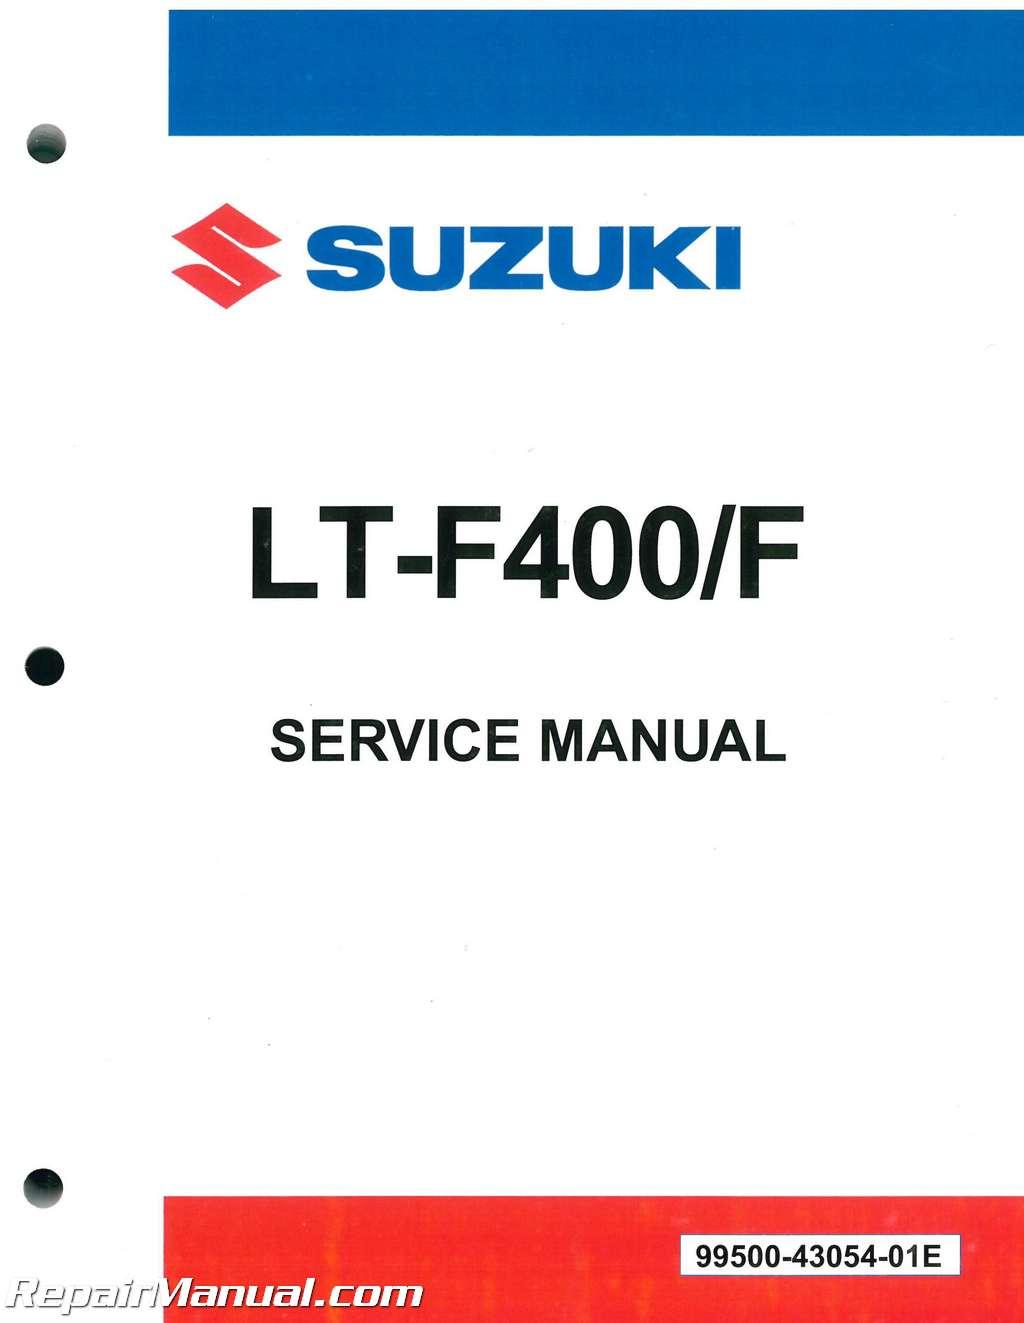 hight resolution of details about suzuki eiger 400 manual lt f400 400f atv 2002 2007 service manual 99500 430